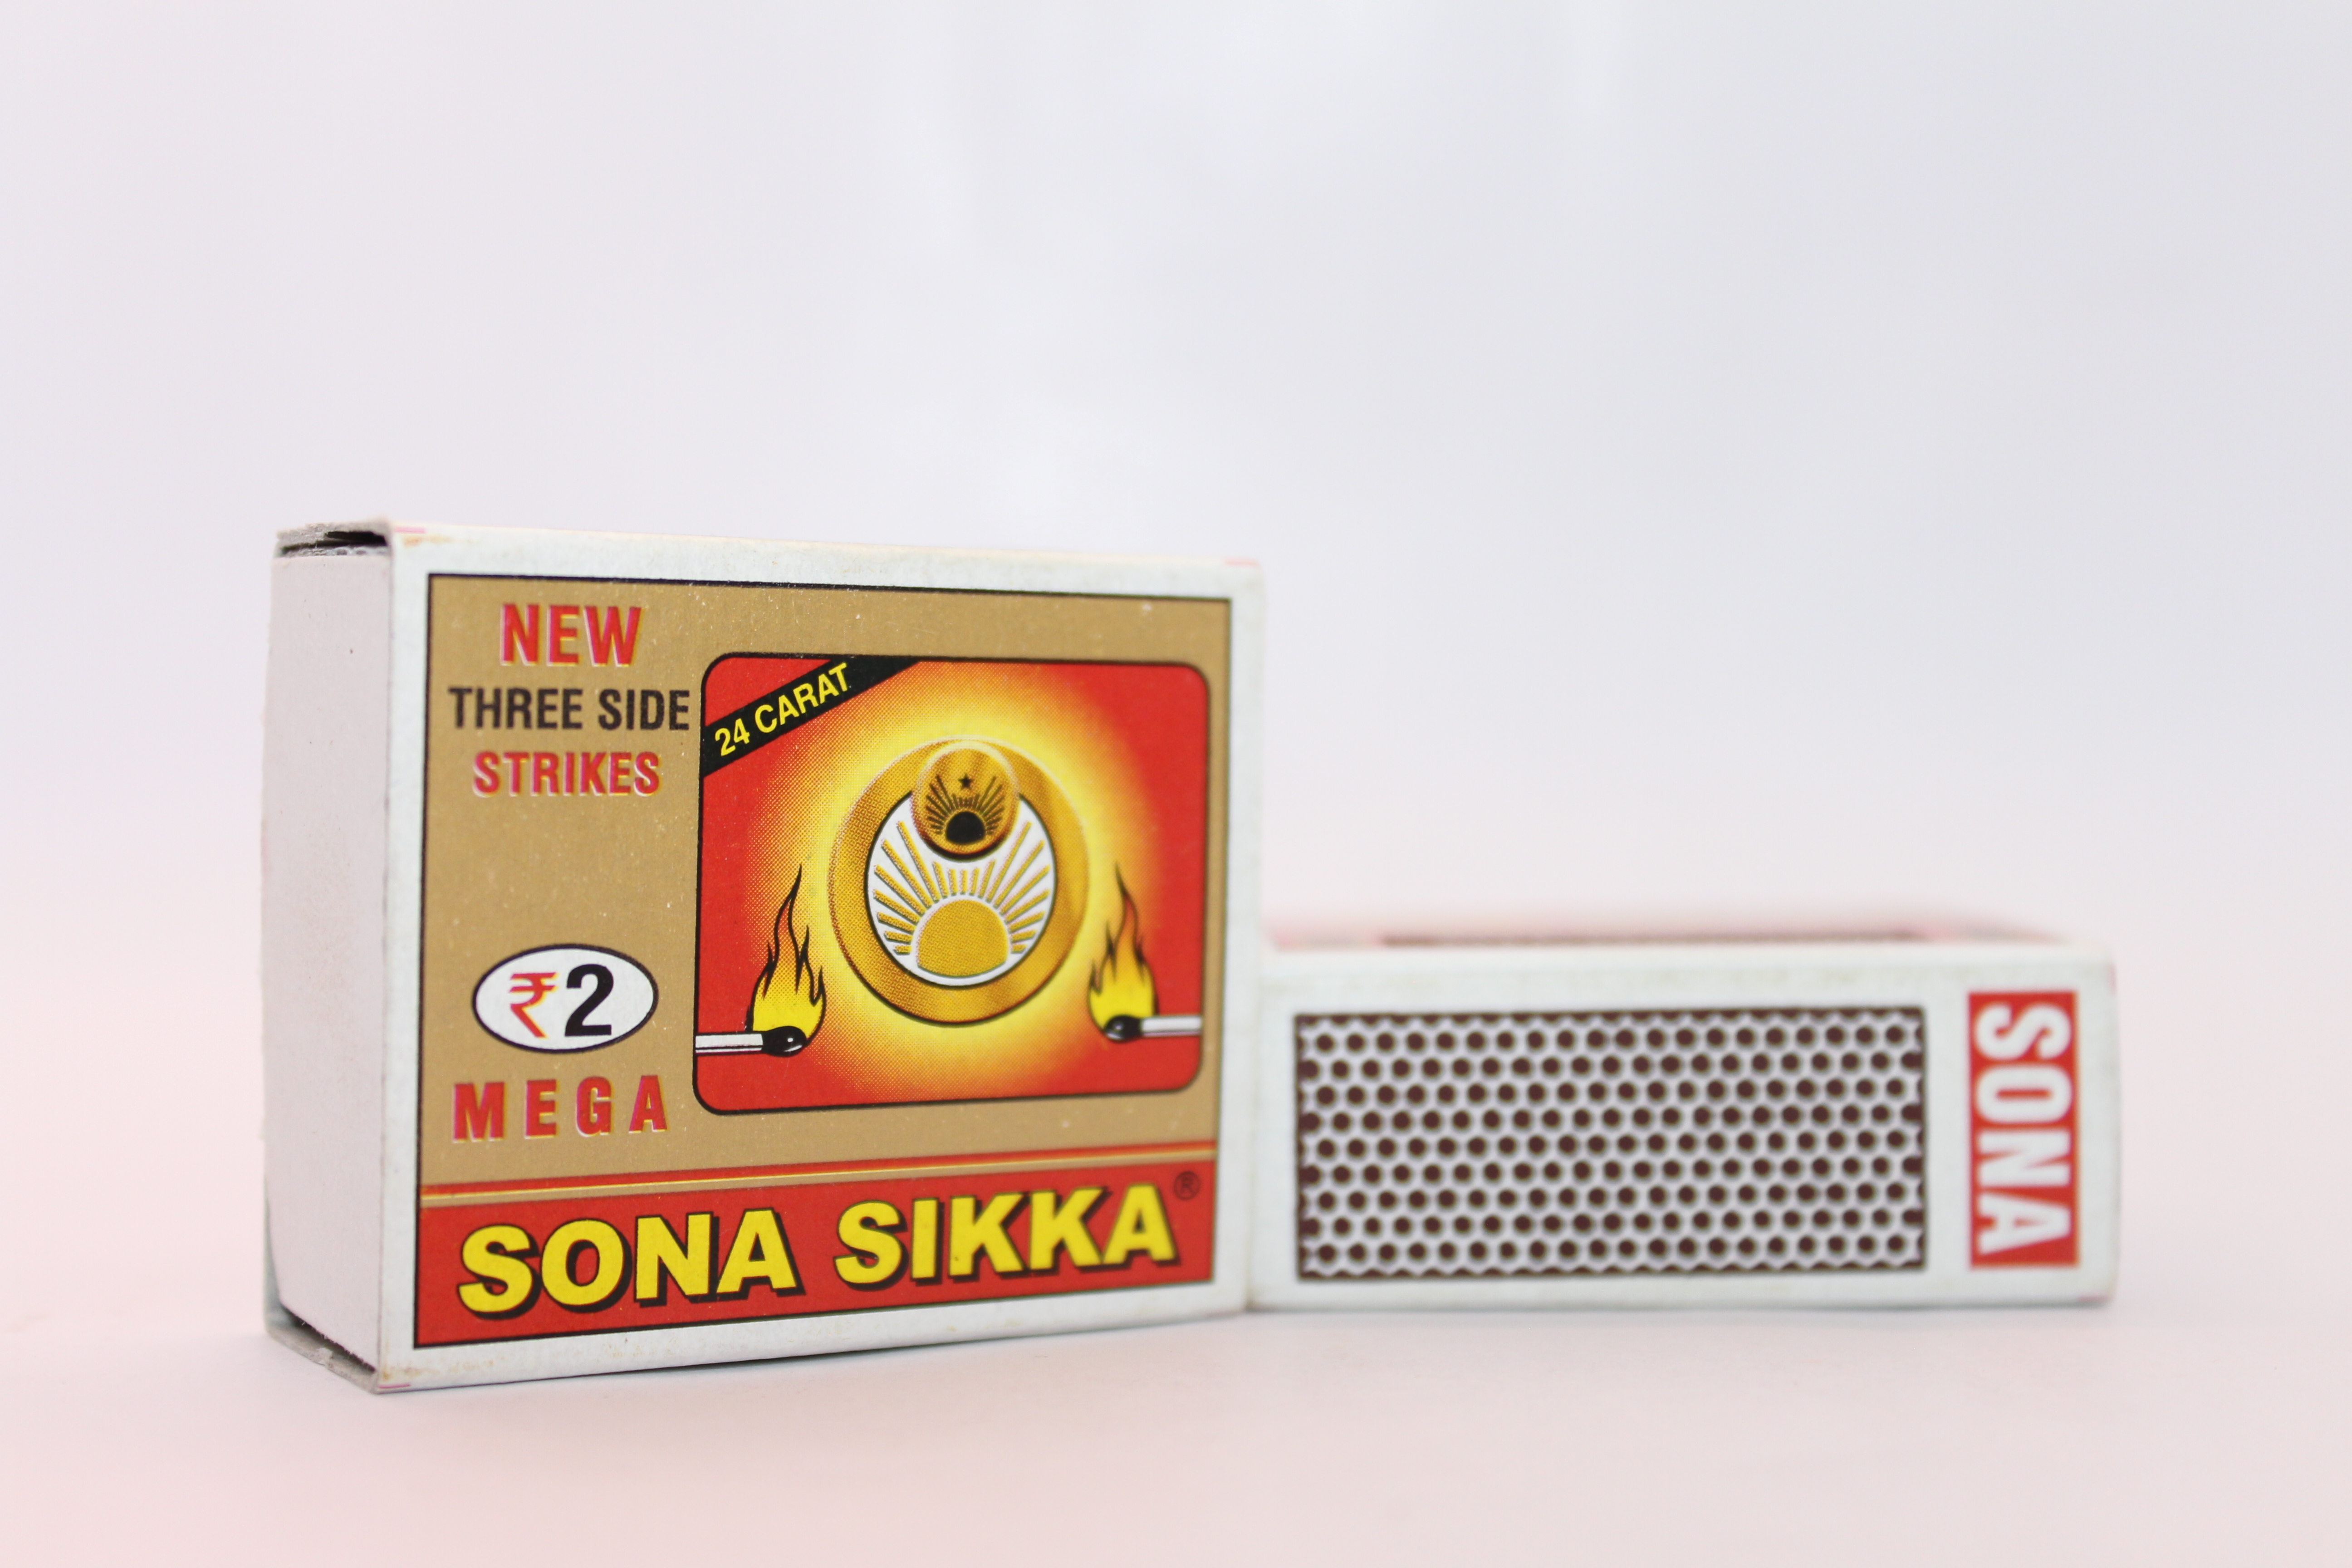 Sona Sikka 2 Rupees Safety Matches